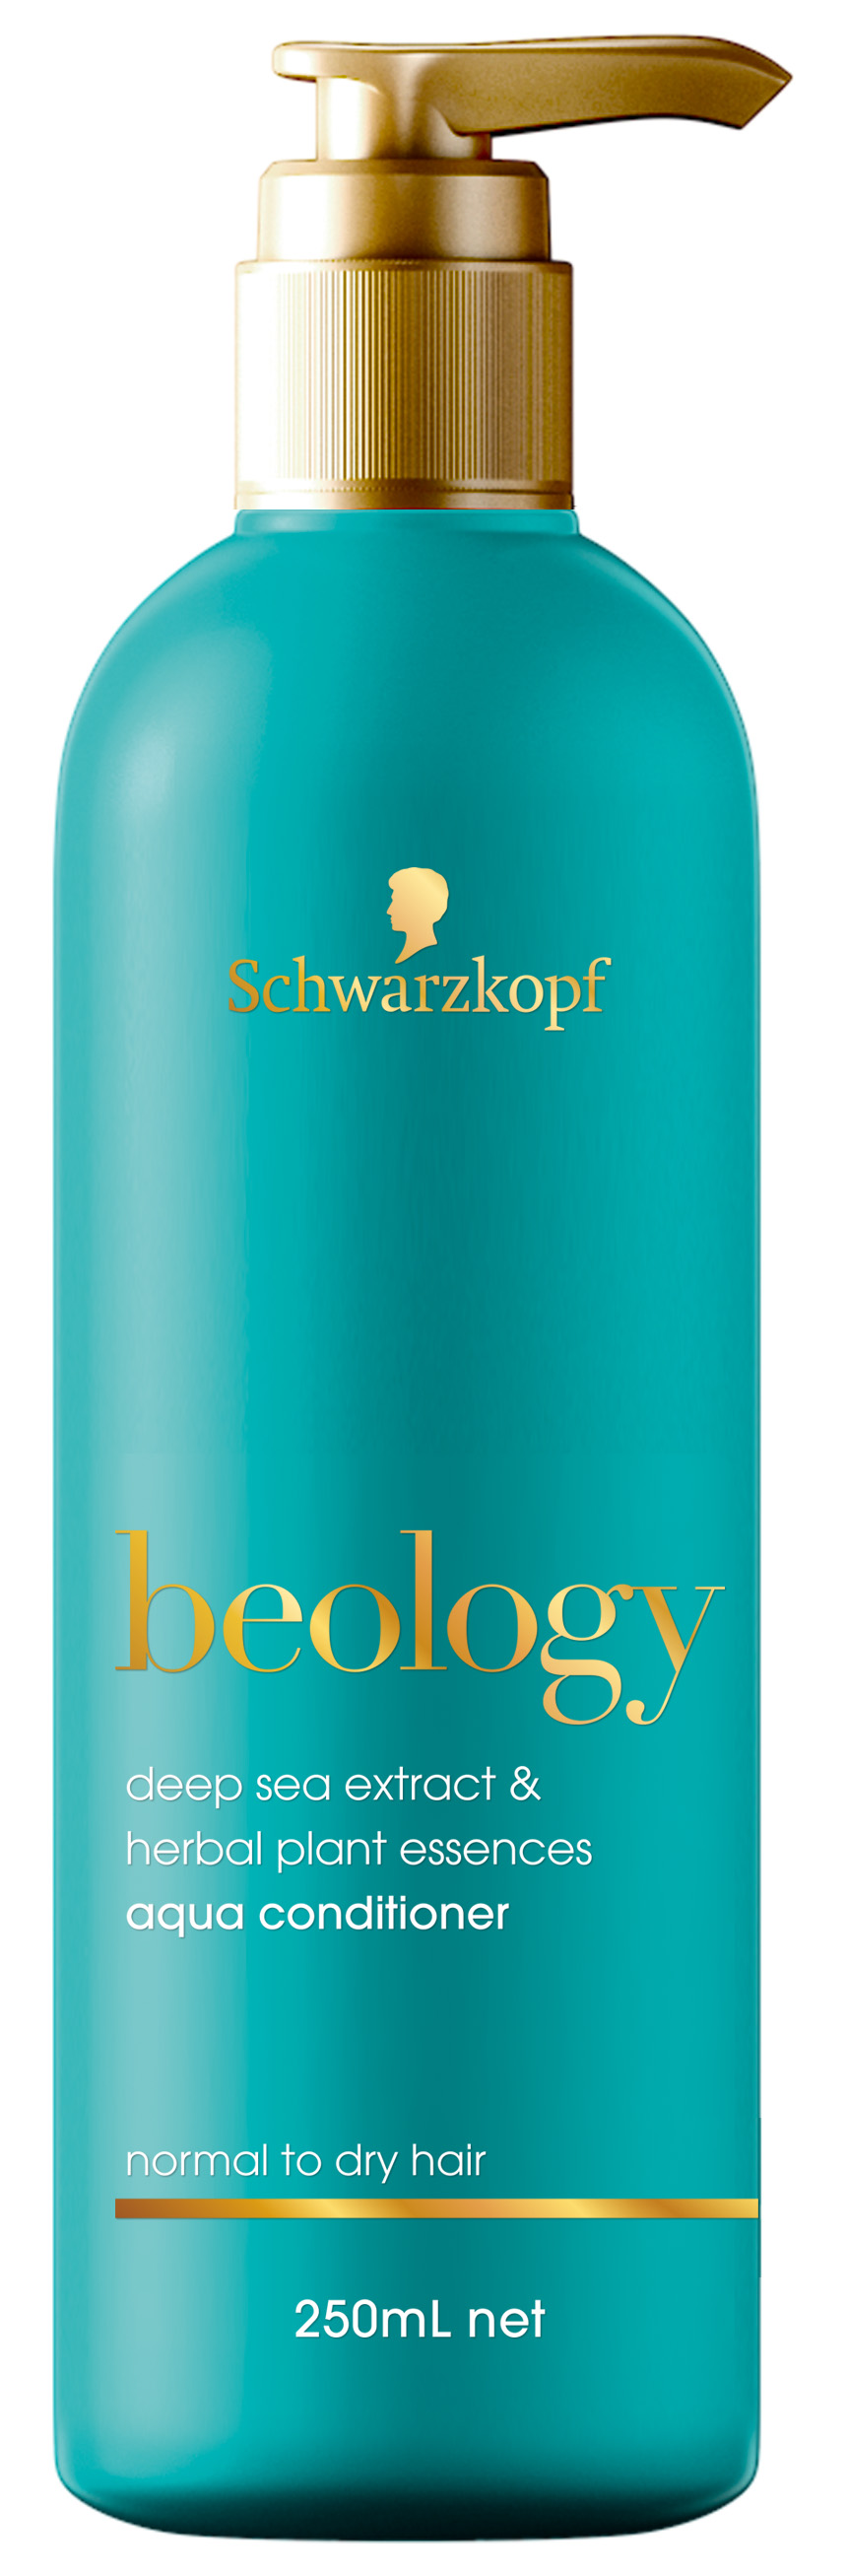 Beology_Aqua_Conditioner copy.jpg